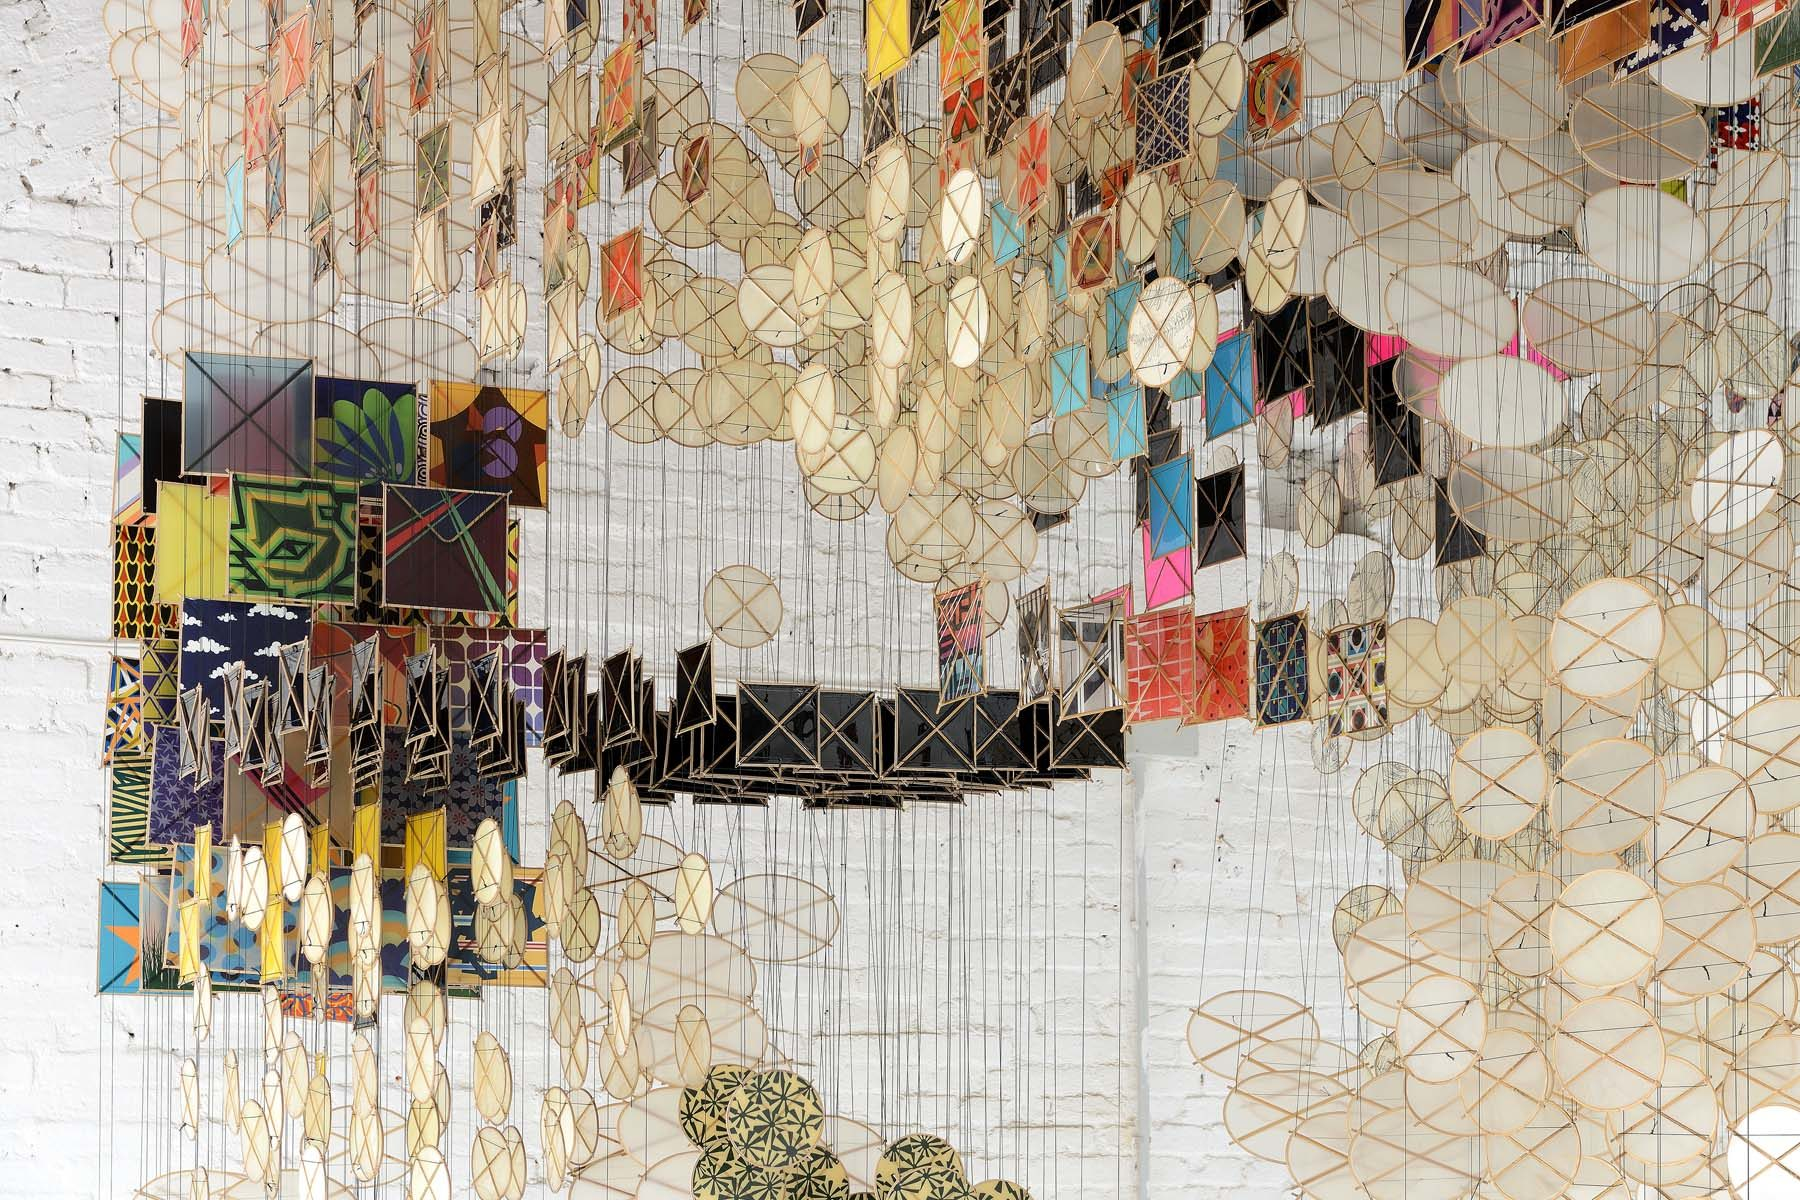 Jacob Hashimoto, The Dark Isn't The Thing to Worry About, 2017-2018, mixed media, installation, courtesy of Studio la Città, Verona, ph. M. A. Sereni